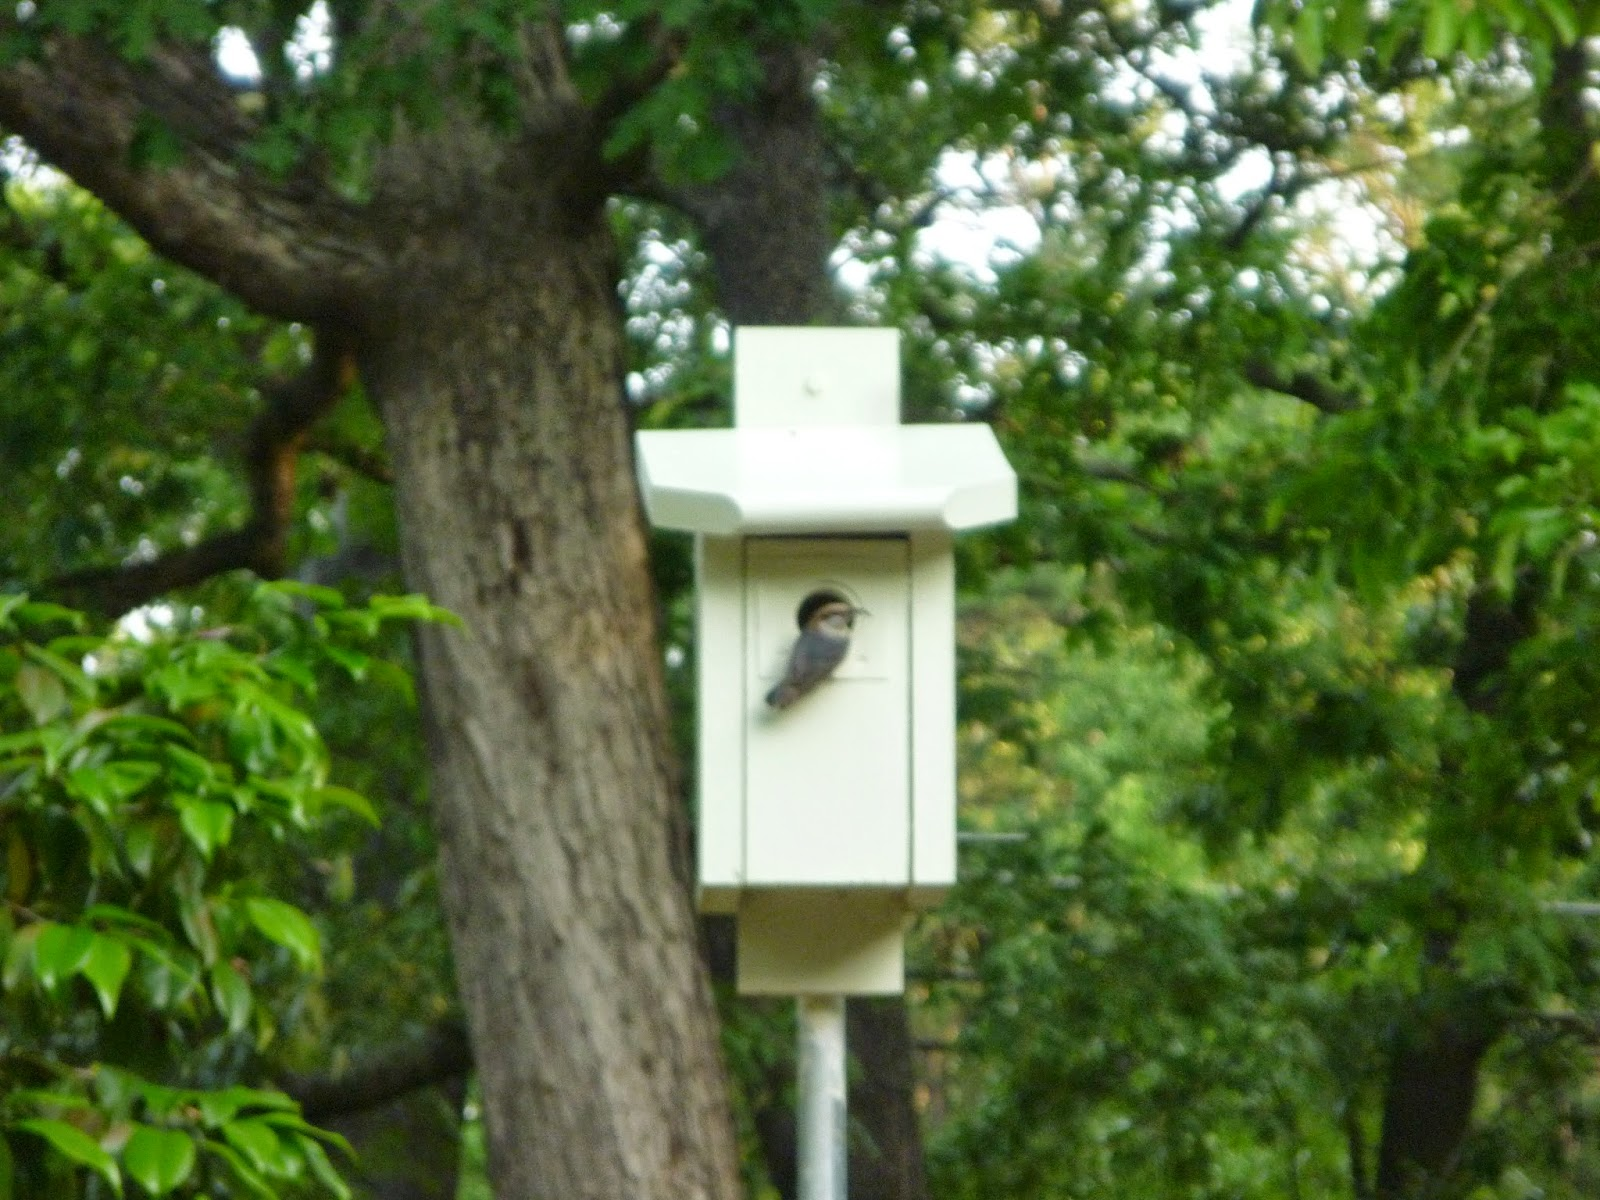 From Bluebirds to Turtles: A Brown-headed Nuthatch Nest - photo#50